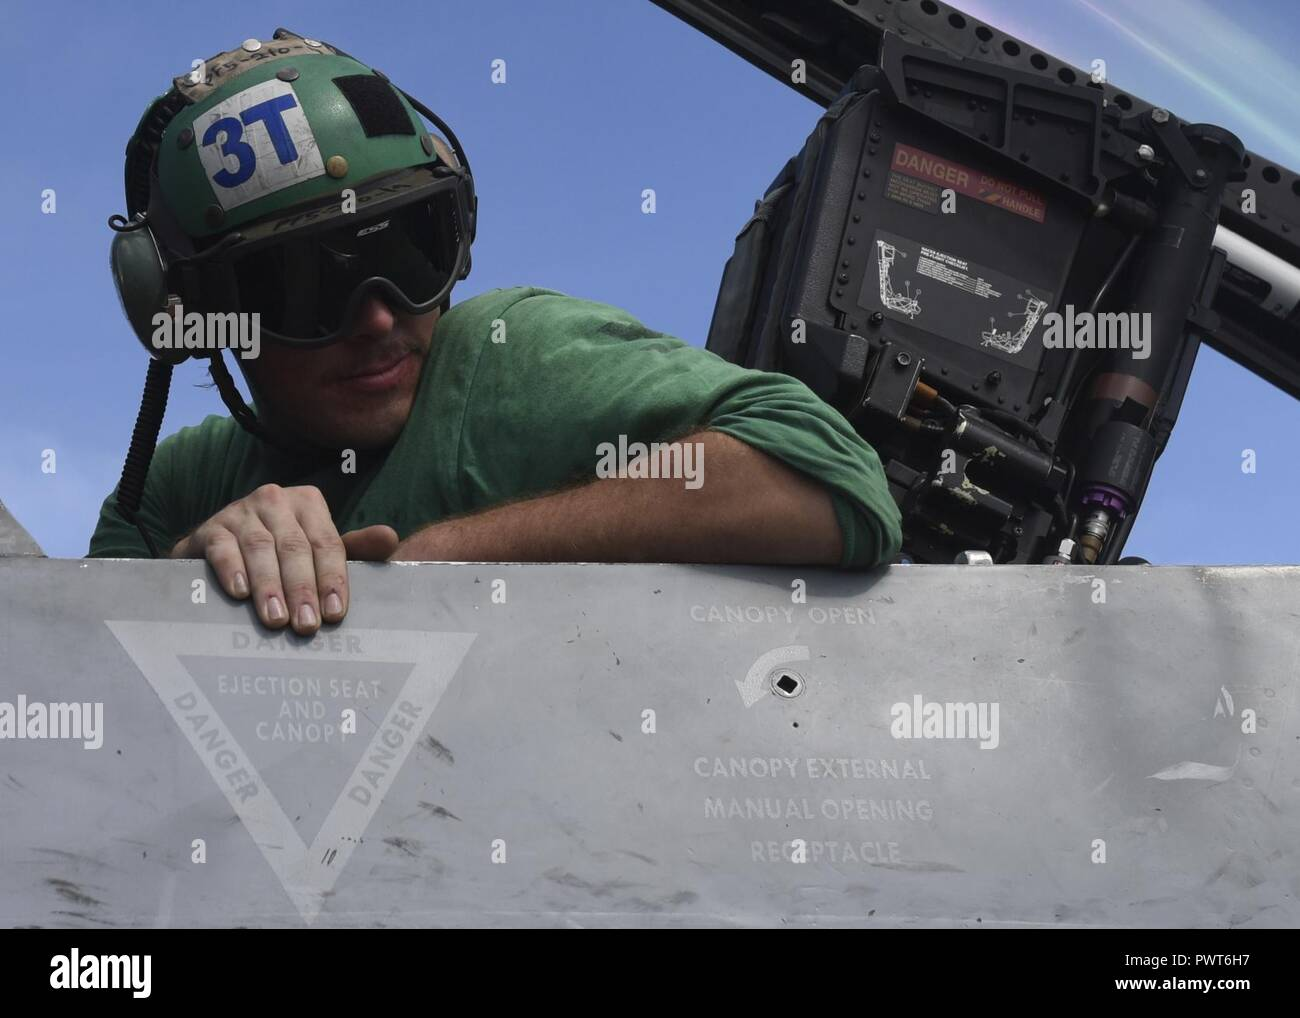 WATERS OFF GUAM (July, 1 2017) U.S. Navy Aviation Electronics Technician 3rd Class Nick Mendenhall, a native of Paso Robles, Calif., performs a visual inspection on a F/A-18 E Super Hornet from the 'Blue Diamonds' of Strike Fighter Squadron (VFA) 146 aboard the aircraft carrier USS Nimitz (CVN 68), July 1, 2017, in the Pacific Ocean. Nimitz is currently on deployment in the U.S. 7th Fleet area of operations. The U.S. Navy has patrolled the Indo-Asia Pacific routinely for more than 70 years promoting regional peace and security. ( - Stock Image